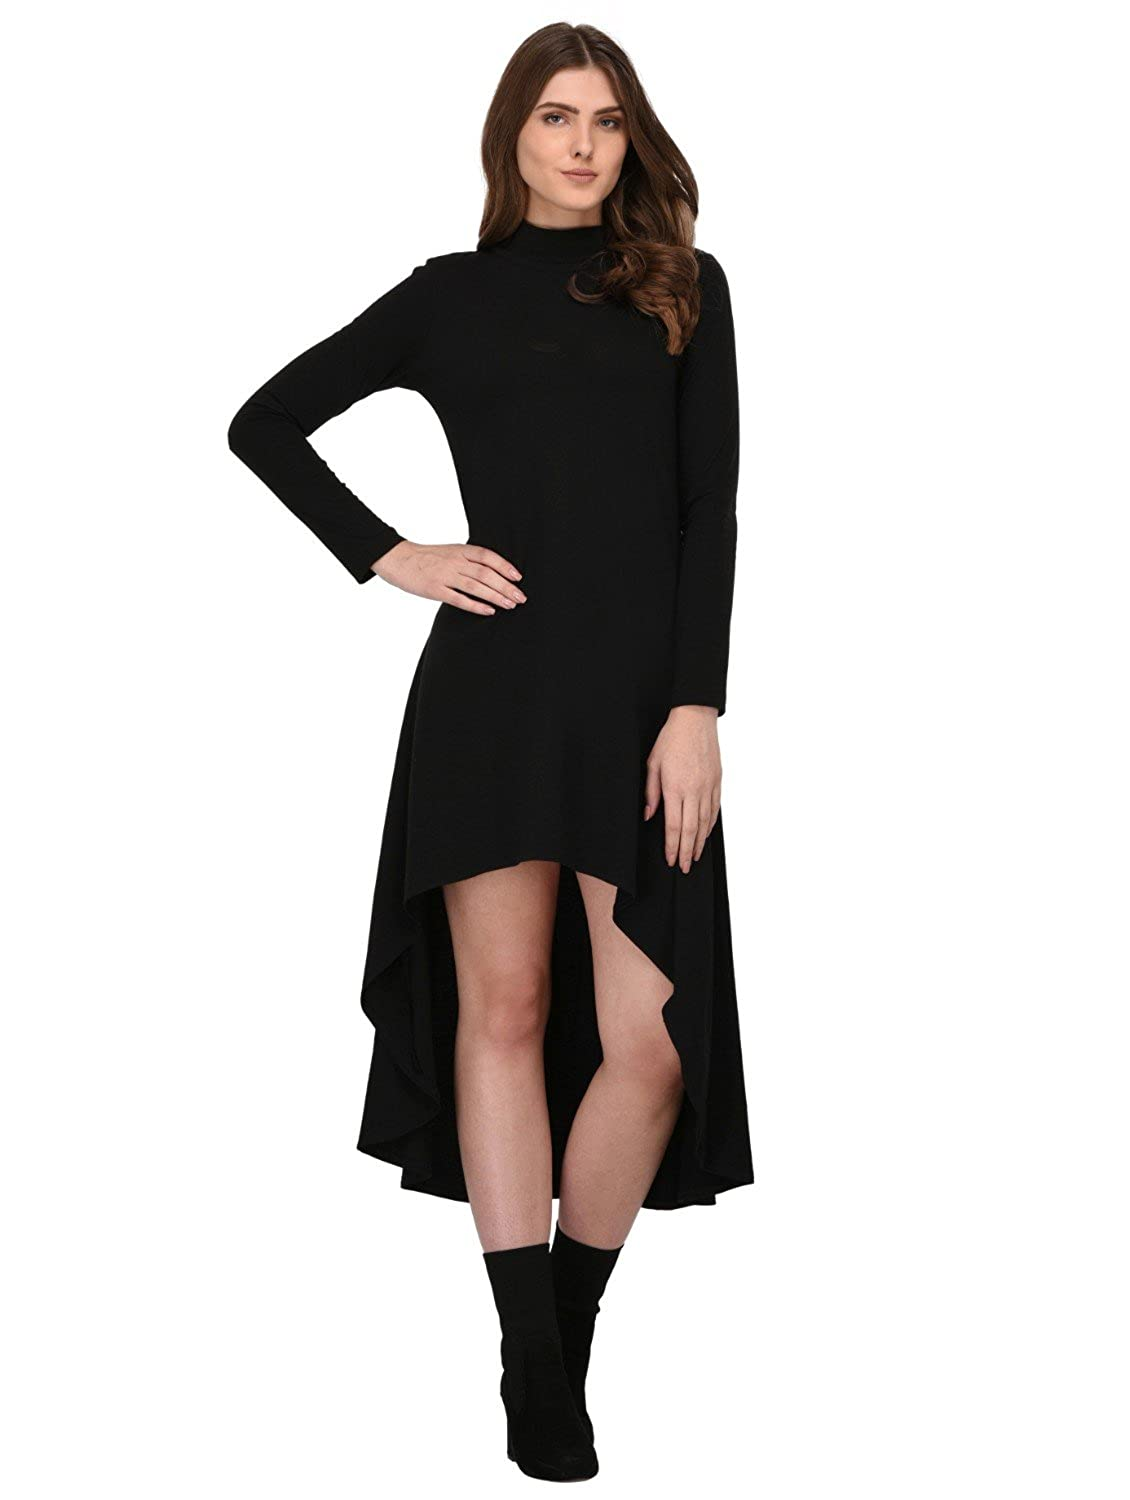 a5892e341d31 Rigo Black High Low Dress for Women: Amazon.in: Clothing & Accessories